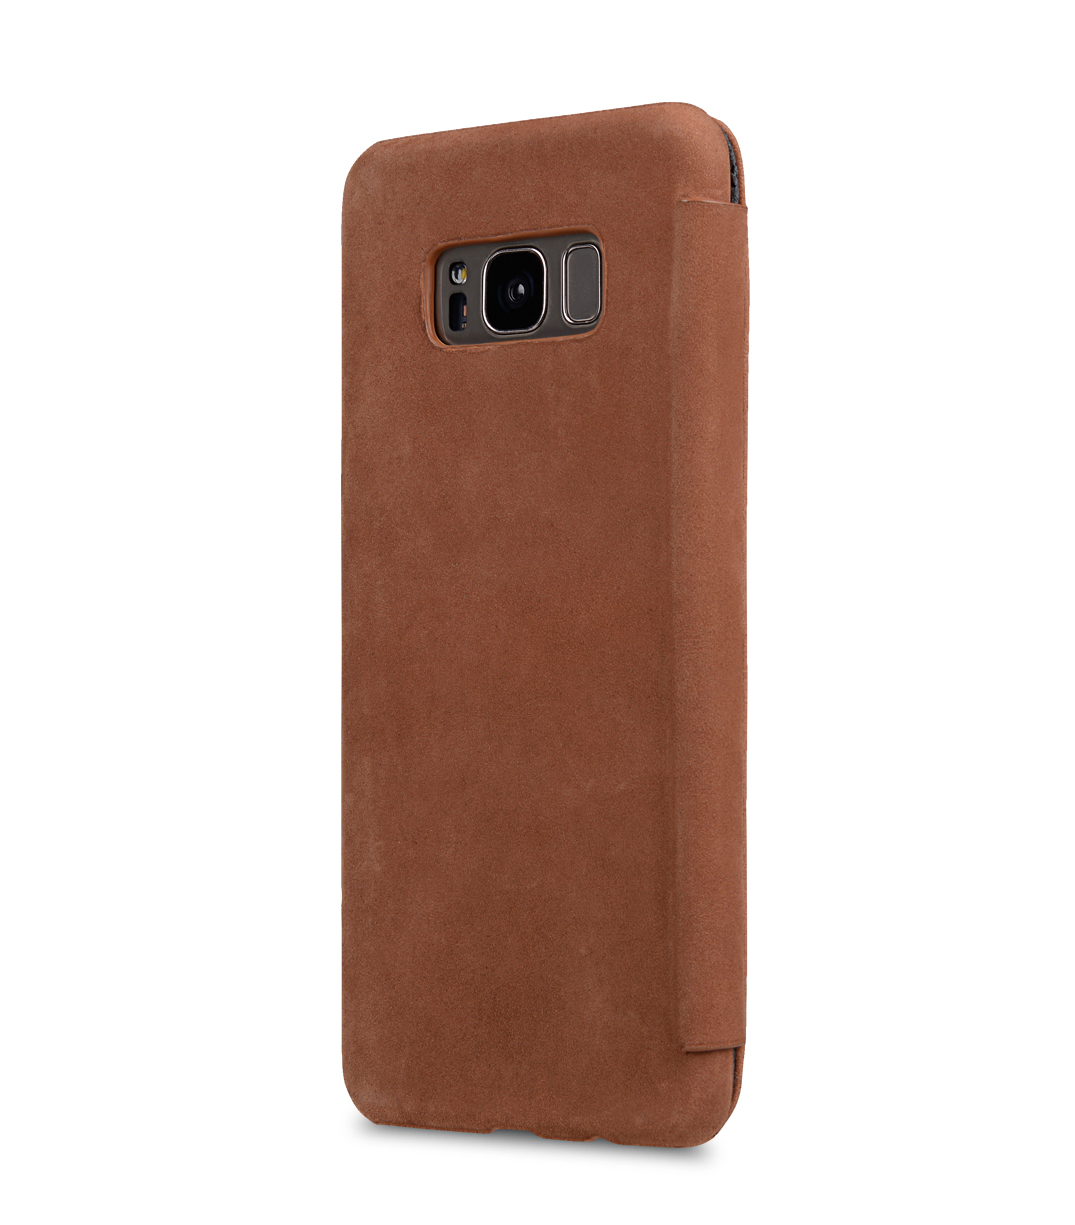 Melkco Premium Leather Case for Samsung Galaxy S8 - Face Cover Book Type (Classic Vintage Brown)